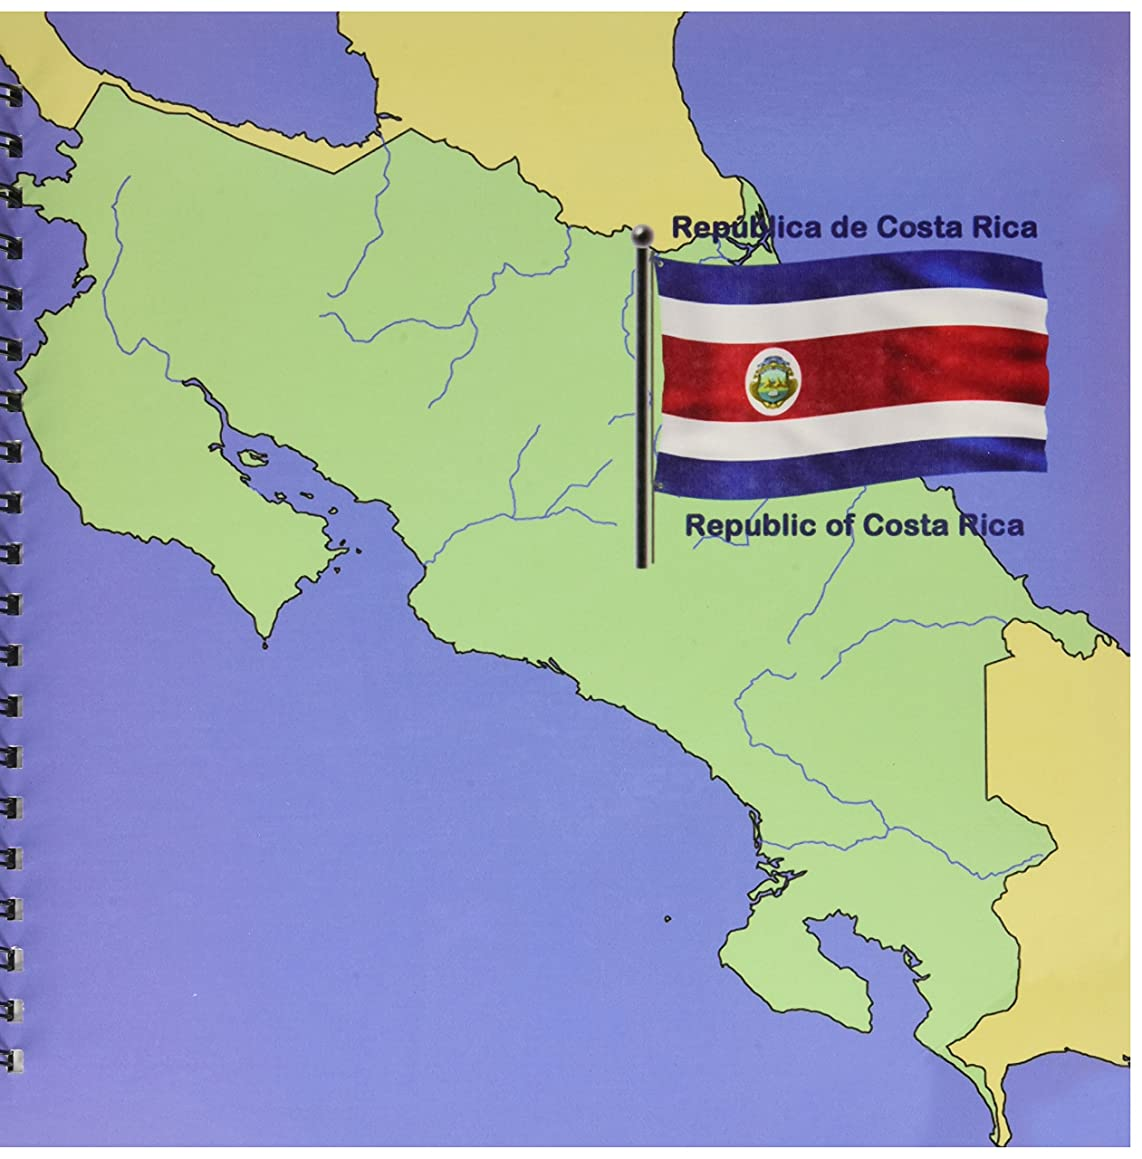 3dRose db_47675_2 Flag and Map of Costa Rica with Republic of Costa Rica Printed in Both English and Spanish Memory Book, 12 by 12-Inch